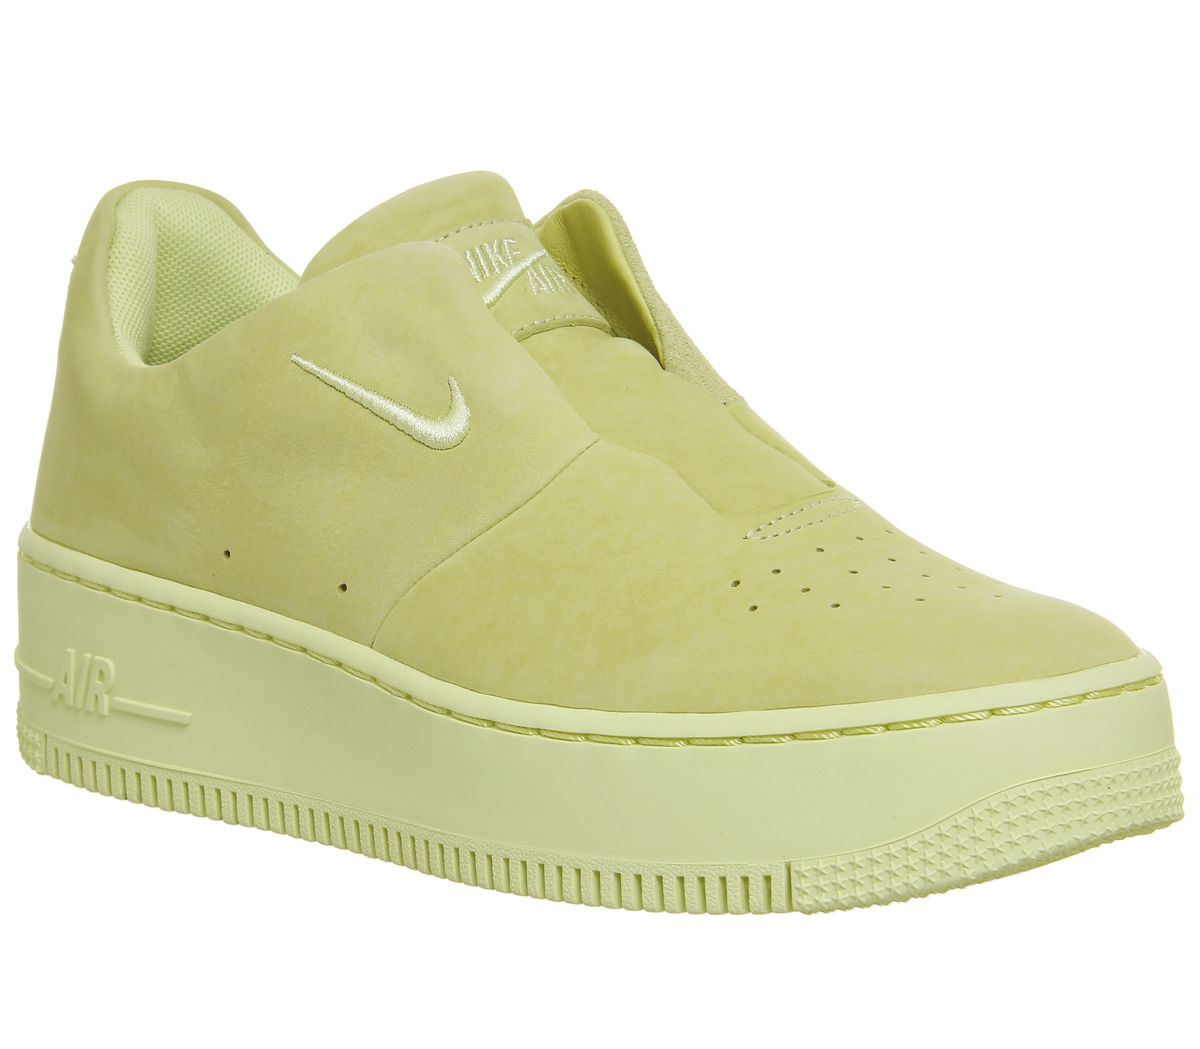 5a587760d Nike Air Force 1 Sage Trainers Lemon Green - Hers trainers